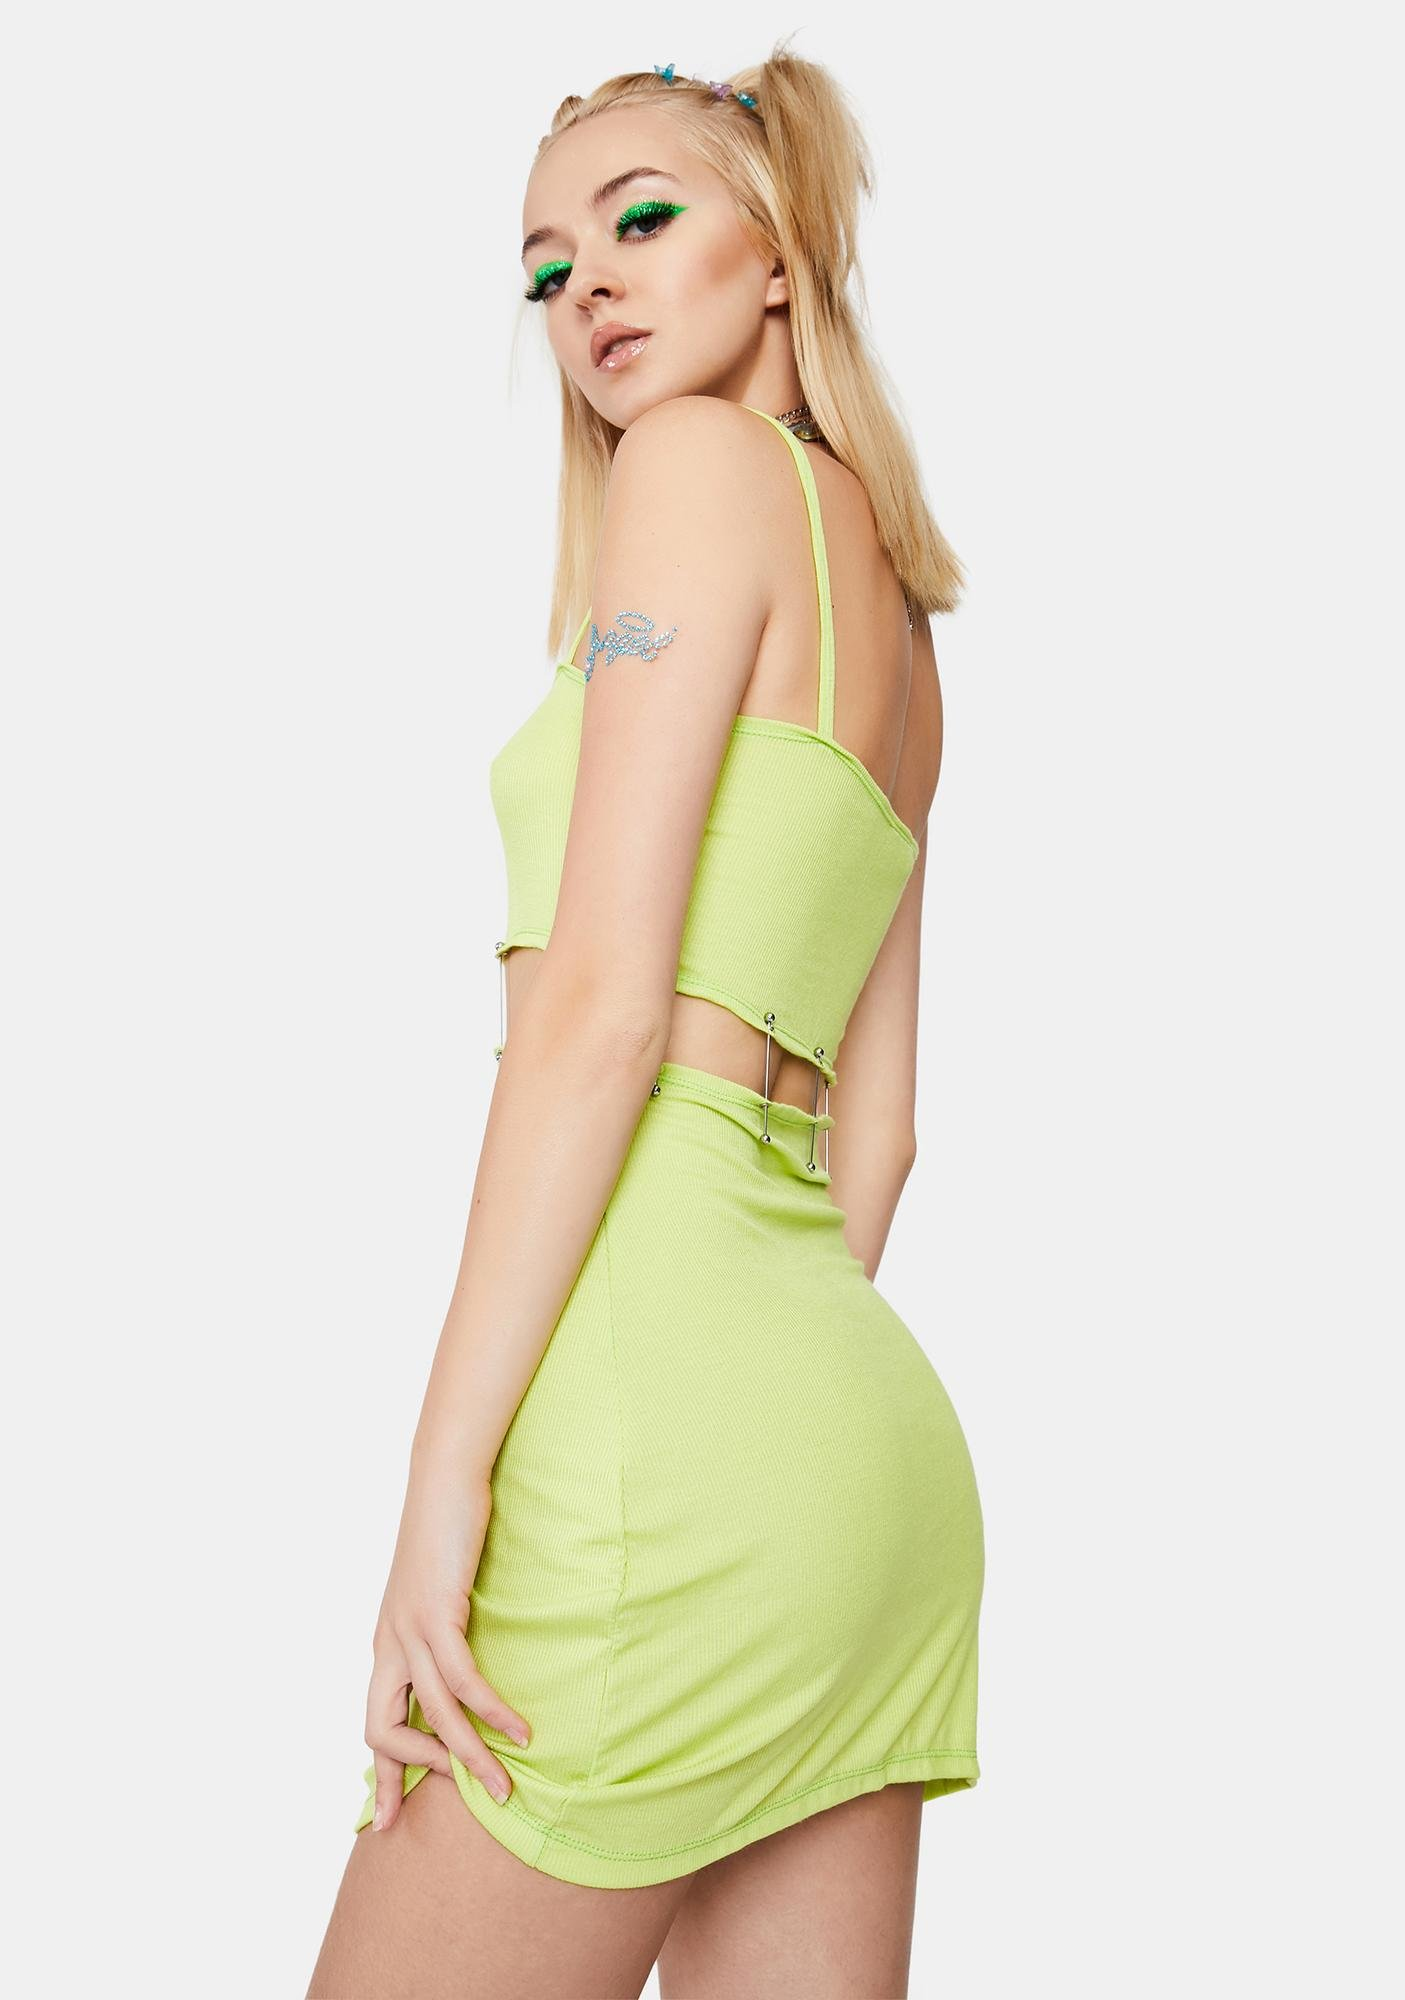 Ivy Berlin Alyssa Mini Dress